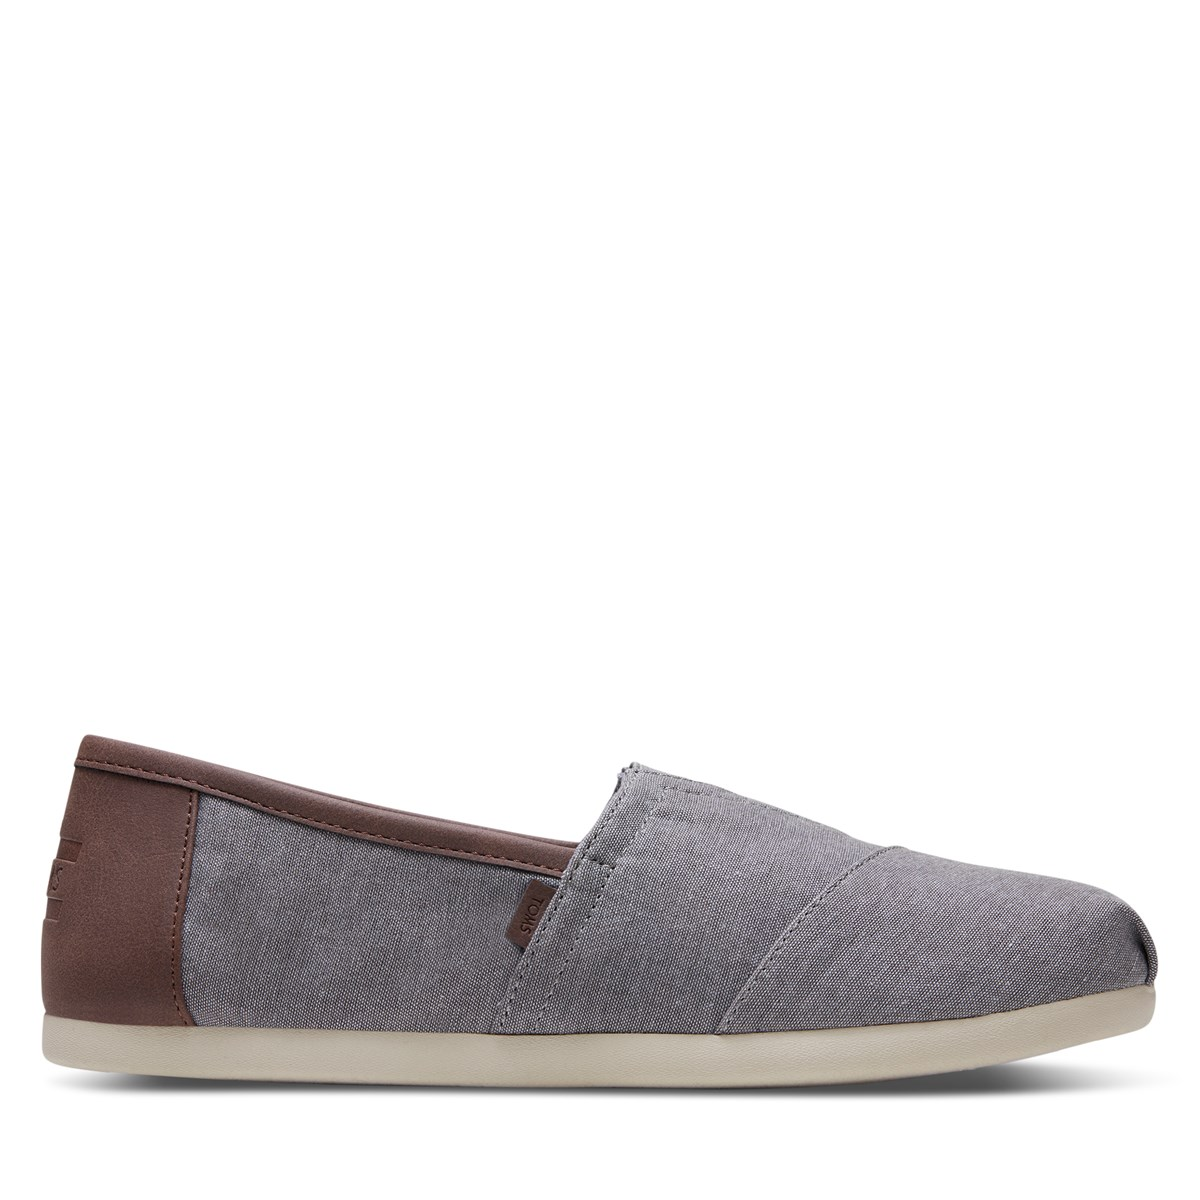 Men's Alpargata Synthetic Trim Slip-Ons in Denim Grey